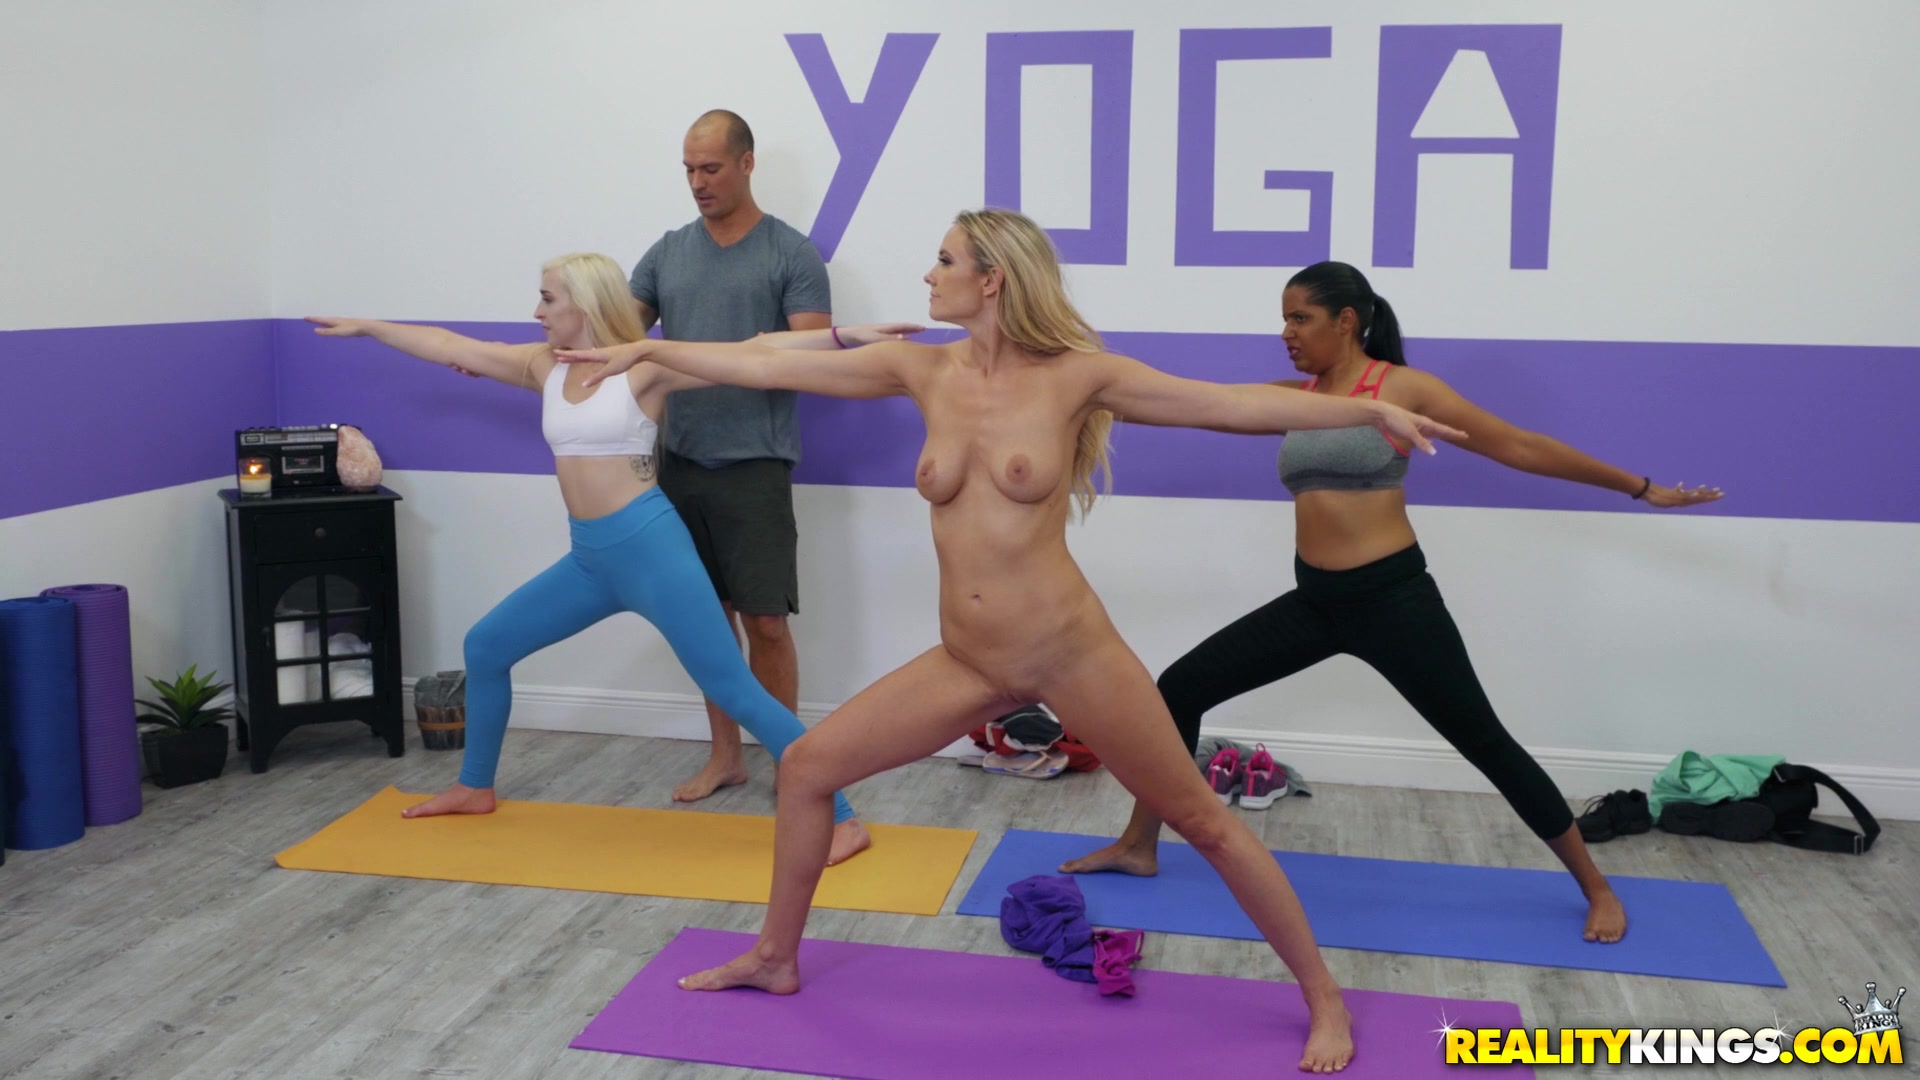 Yoga lesson grants Addie Andrews amazing sex moments